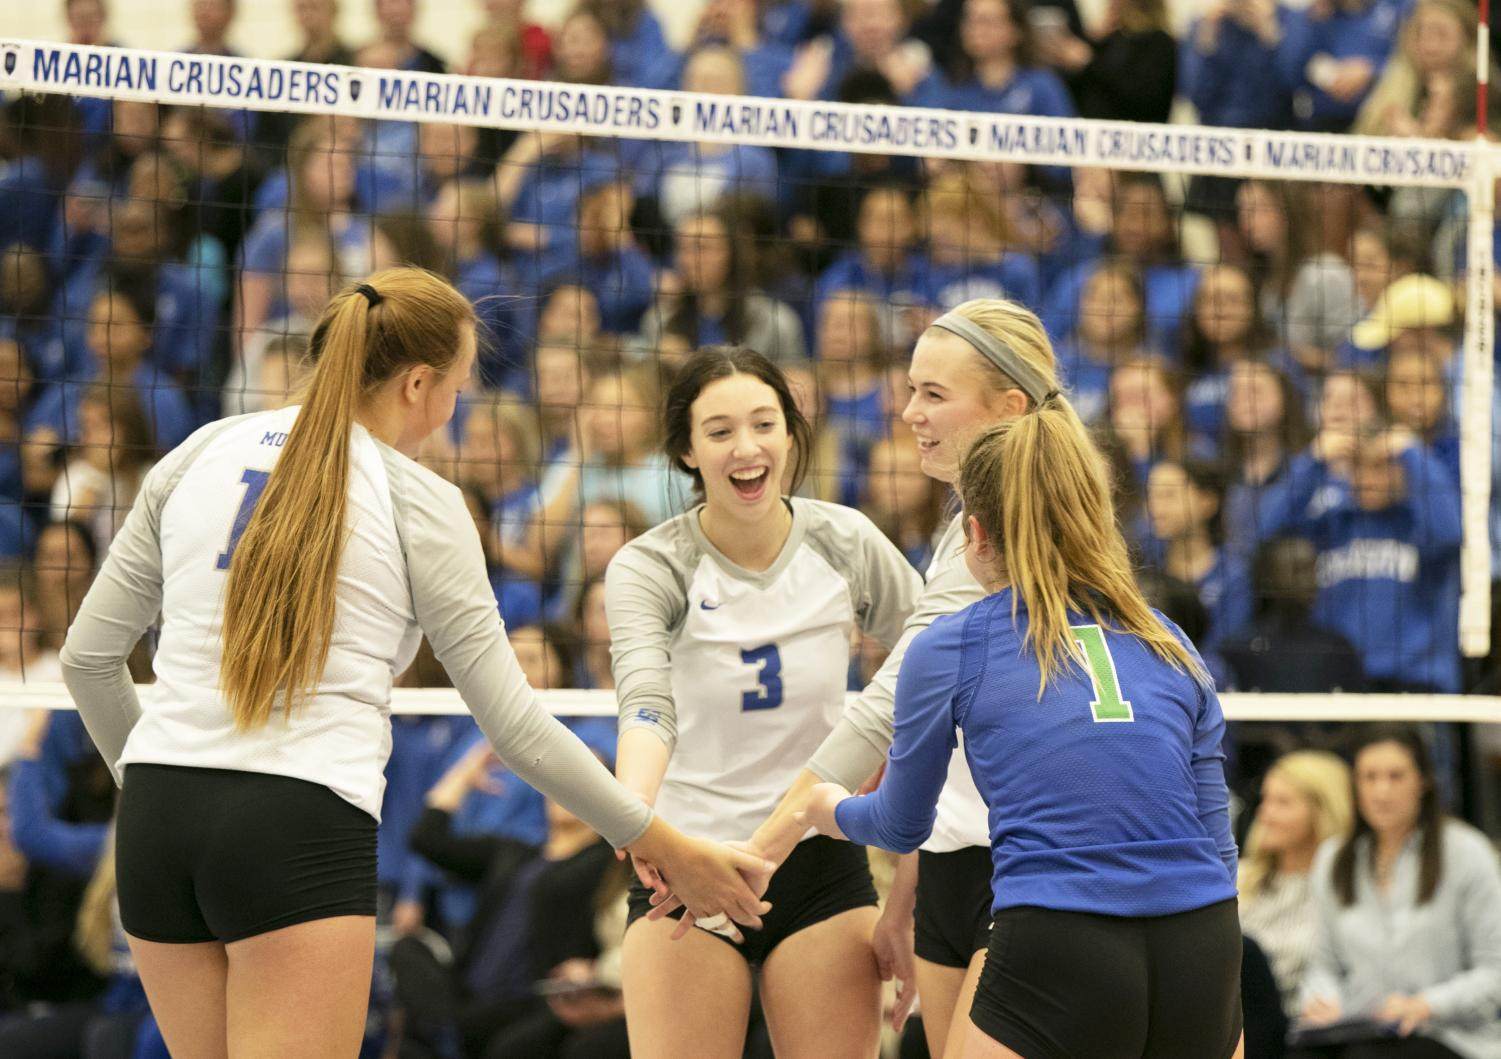 (left to right) Senior Mckenna Ruch, junior Mollie Fee, senior Lauren Maciejewski, and sophomore Kate Galvin high five after they score on Marian. Millard North won the game 3-2.